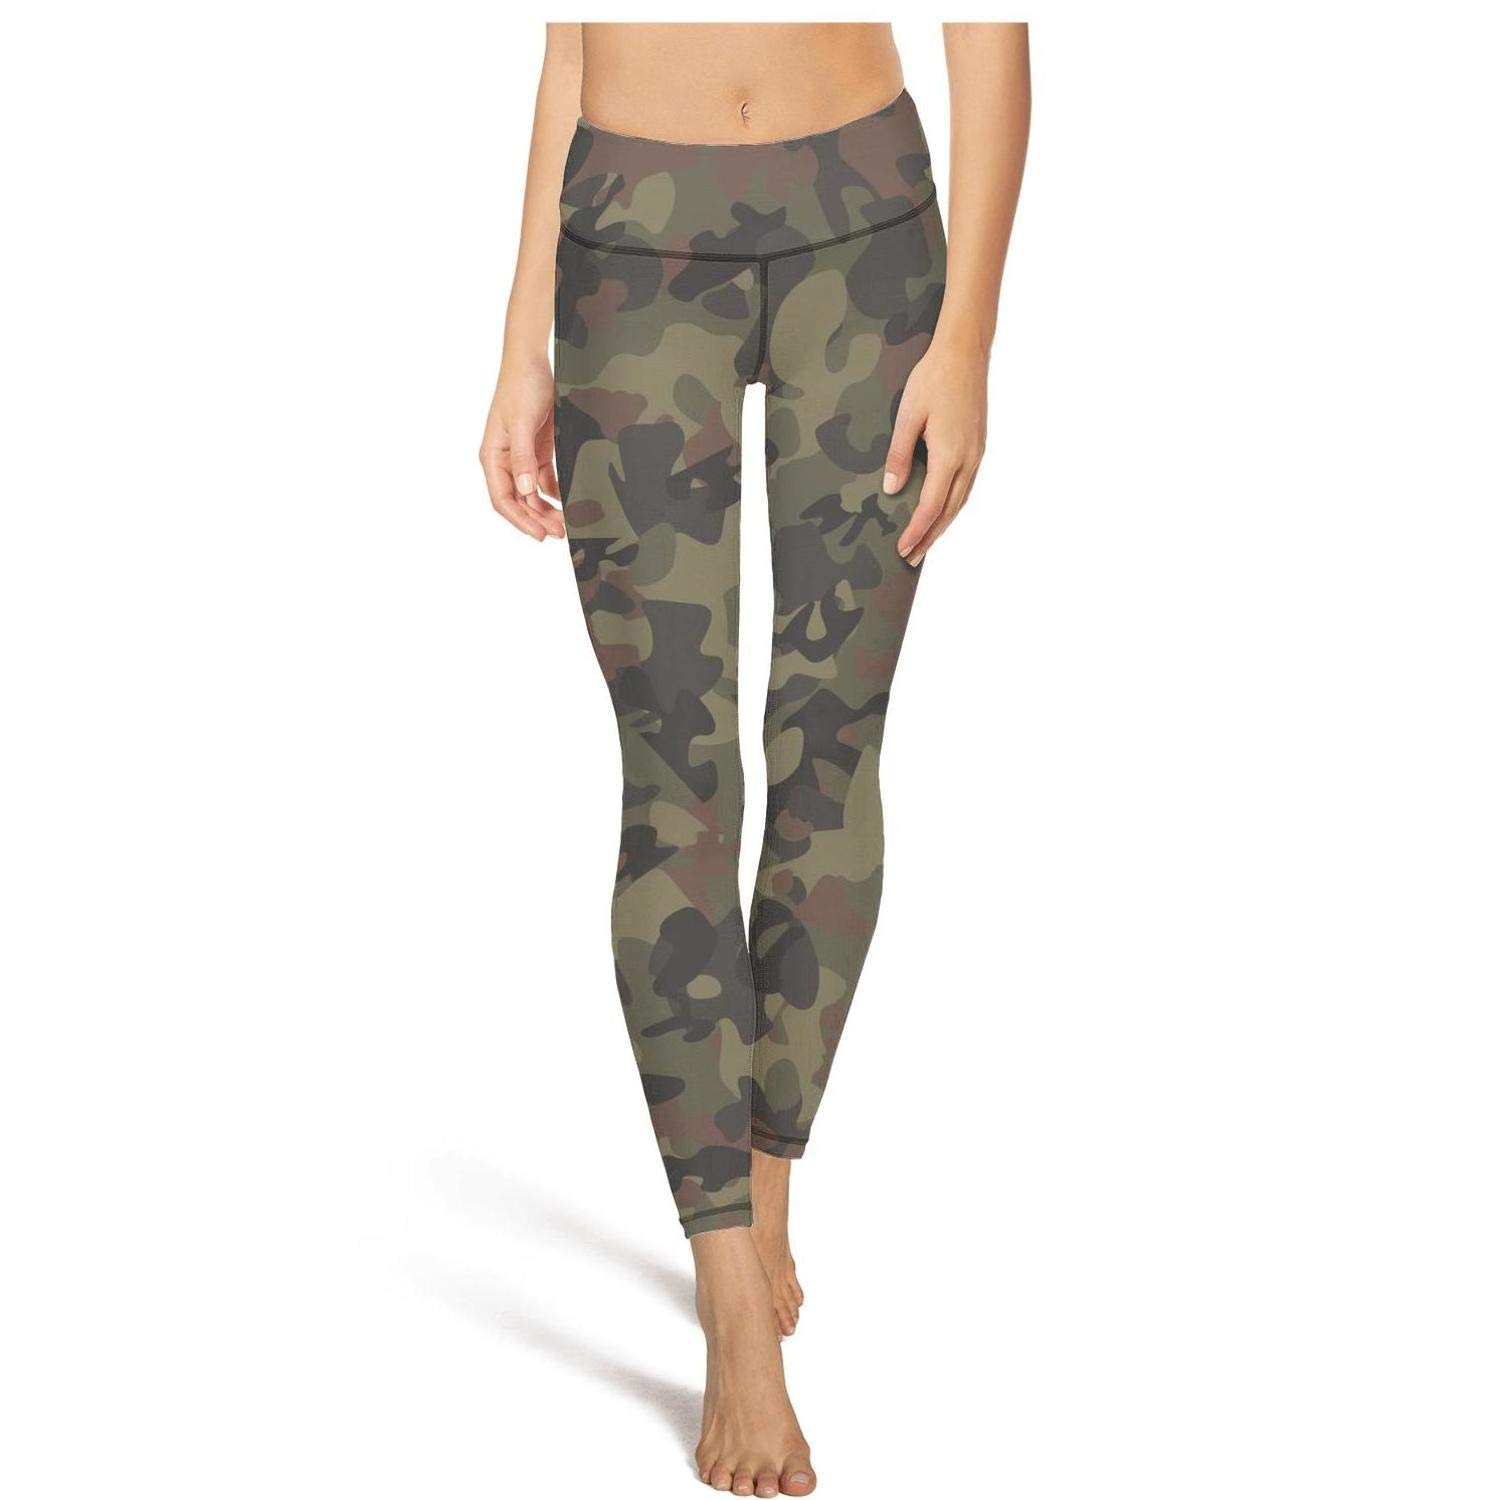 MollyWord Camo Army Camouflage Woodland Workout Running Leggings for Women Tummy Control Essential Yoga Pants with Pockets